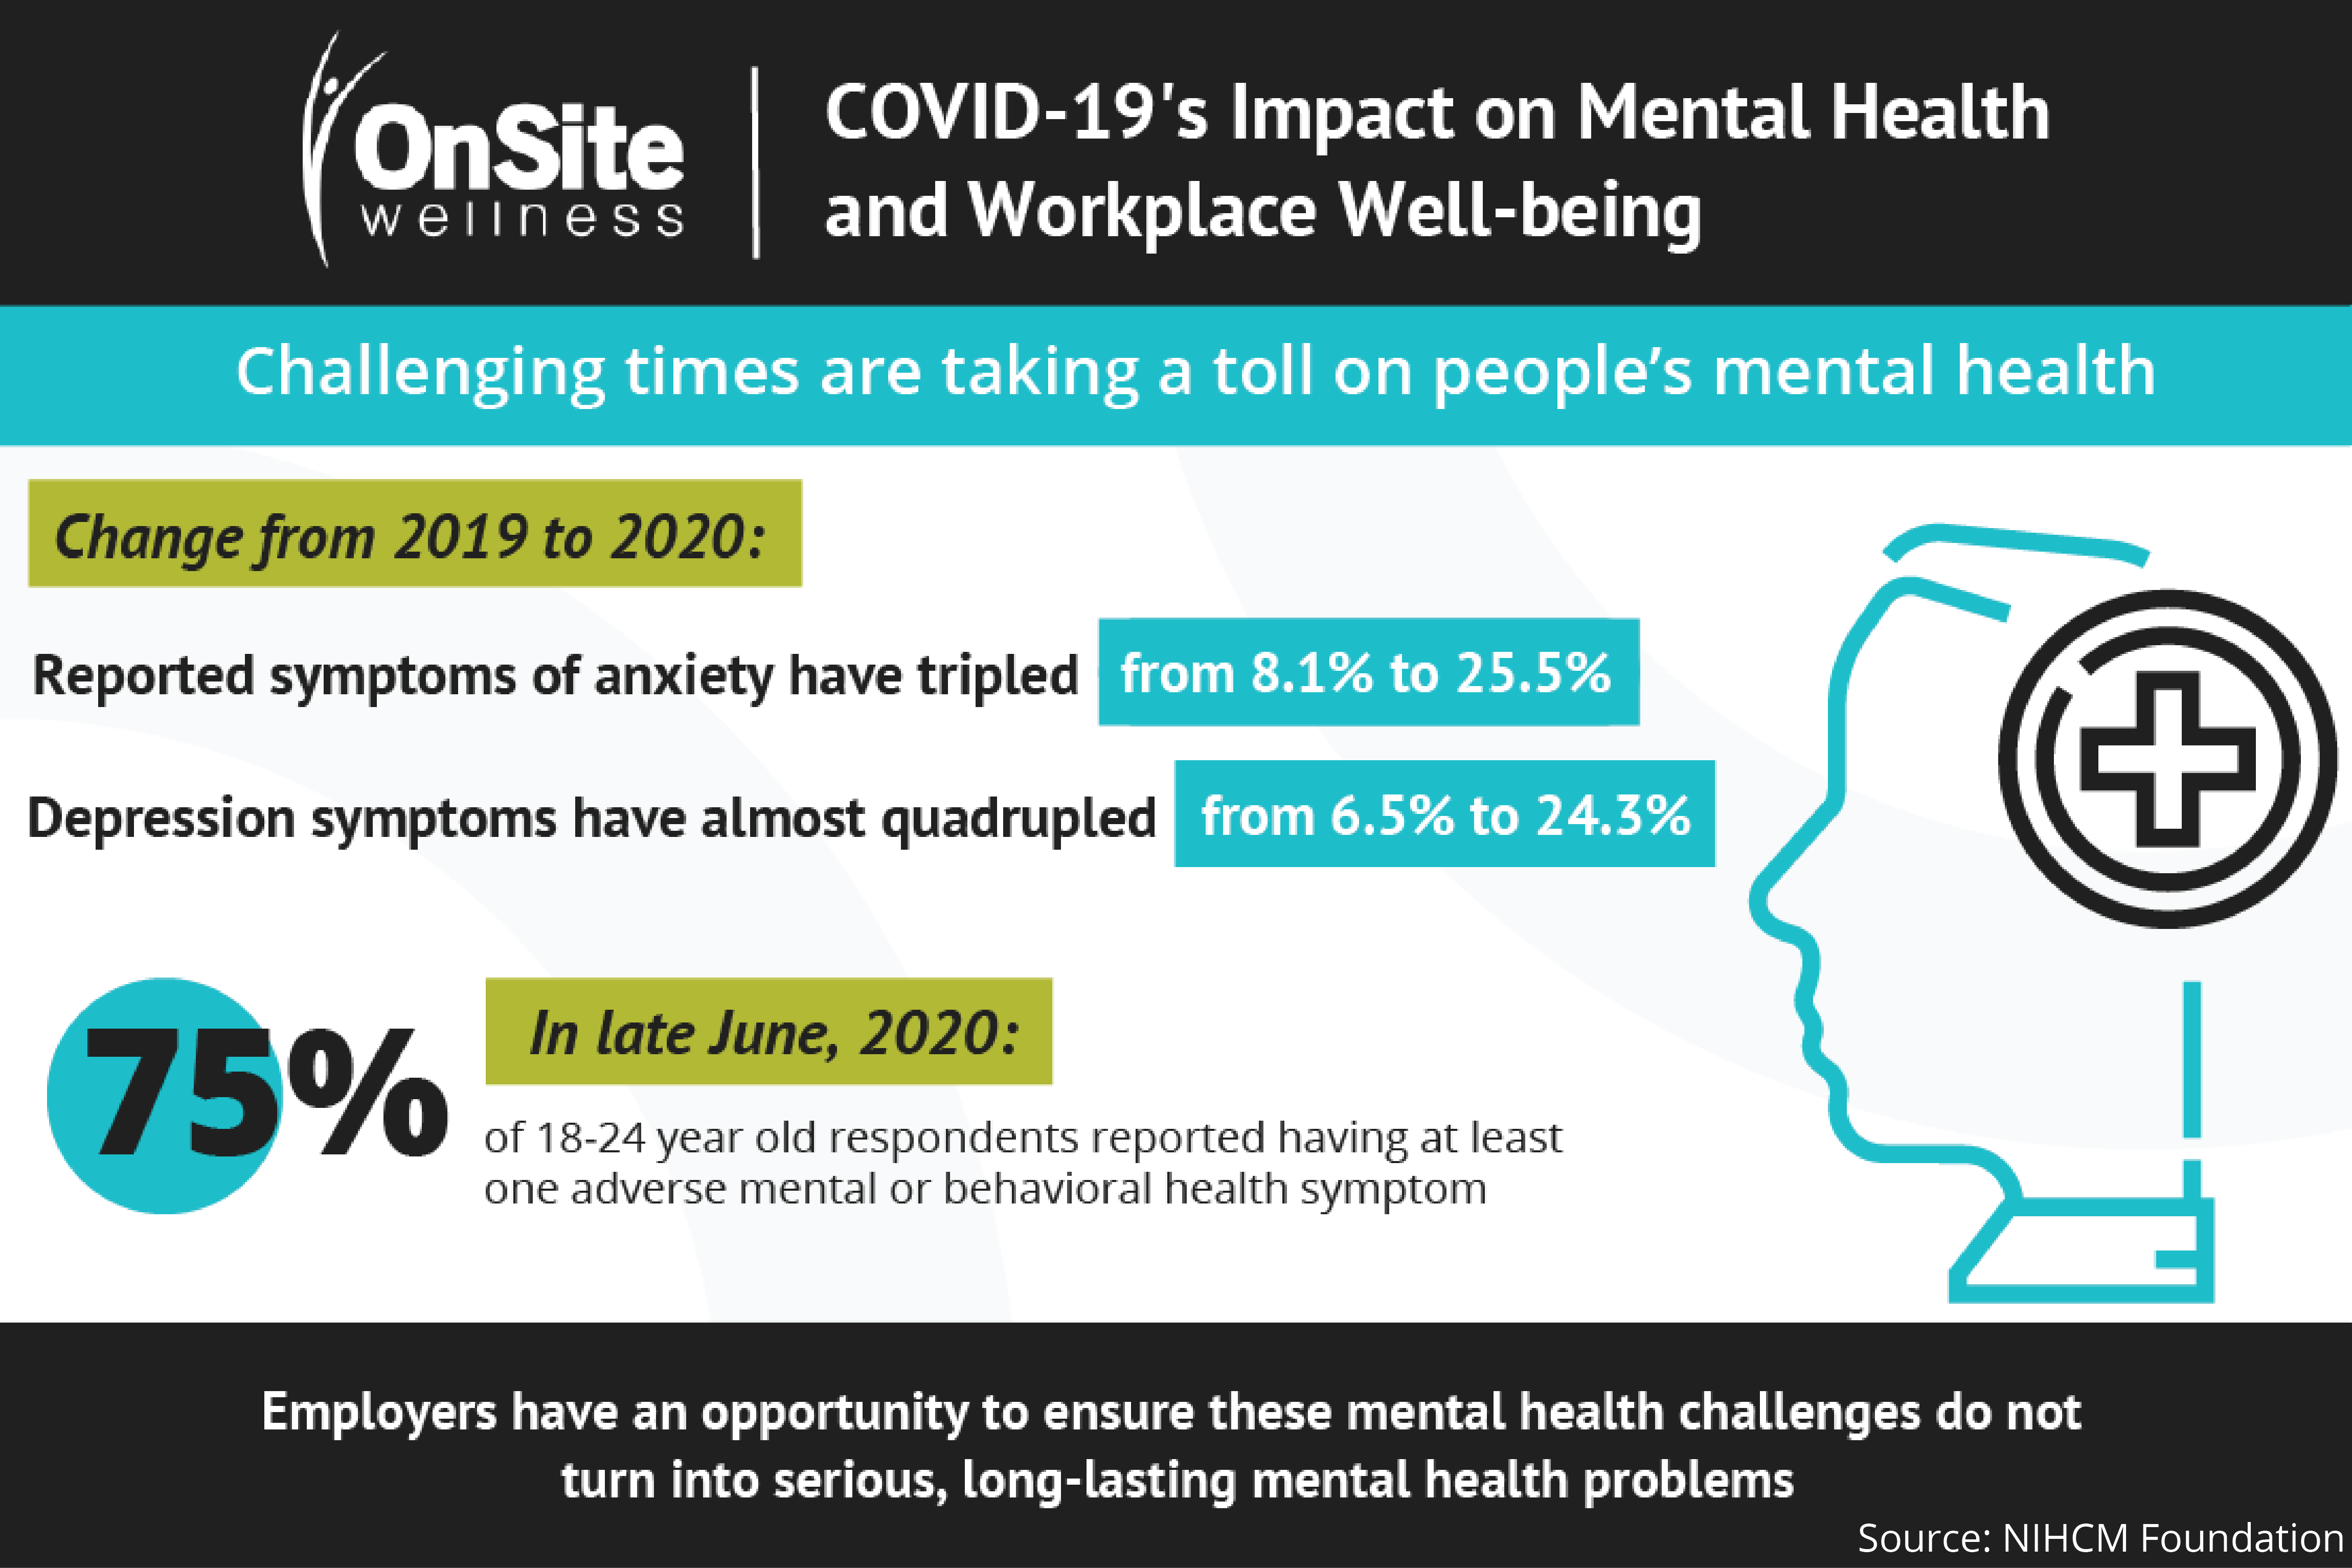 COVID-19 & Workplace Well-being: Employee Mental Health